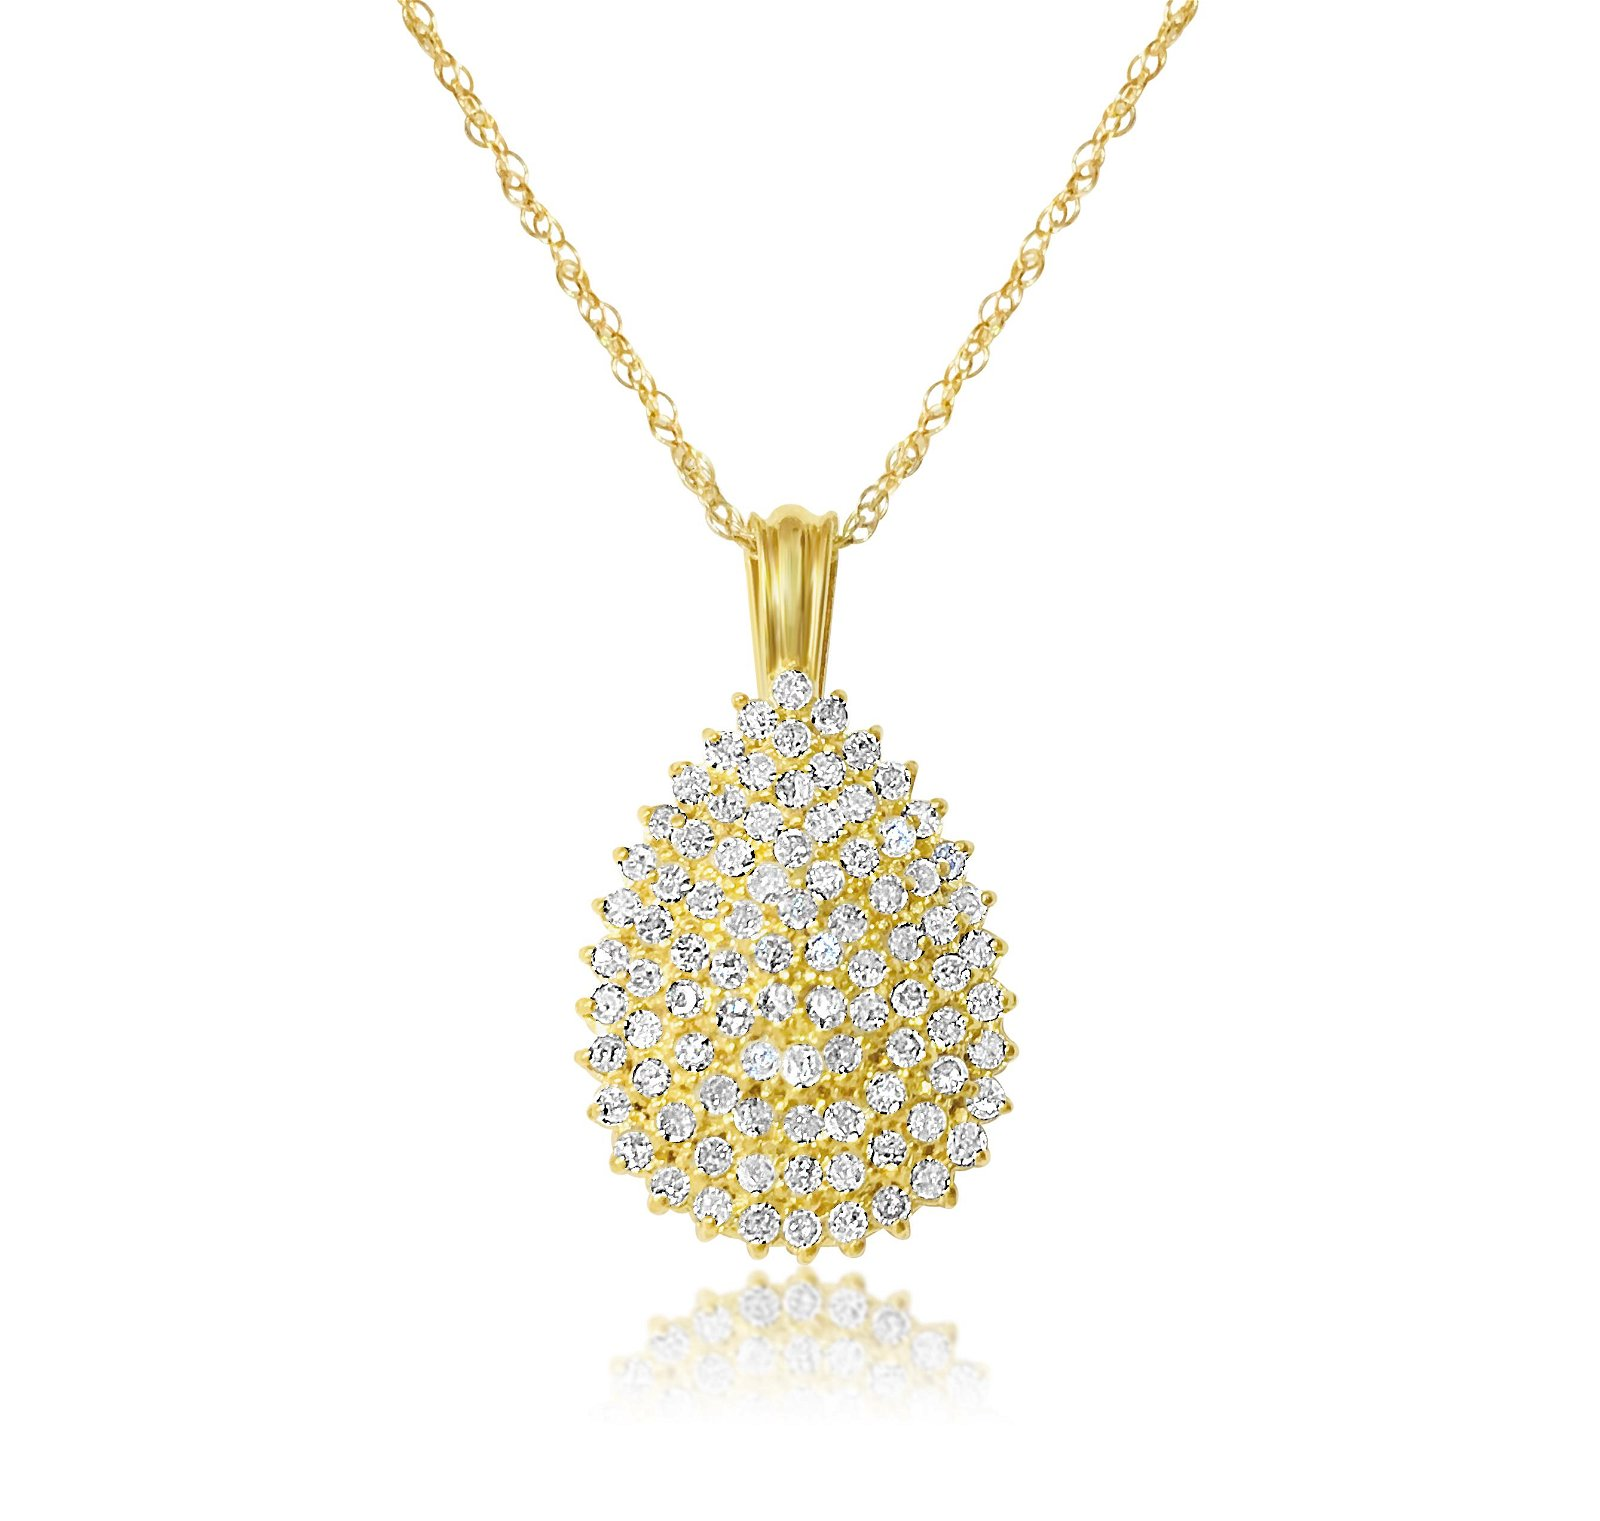 3.00 Carat Diamonds in 14K Yellow Gold Necklace